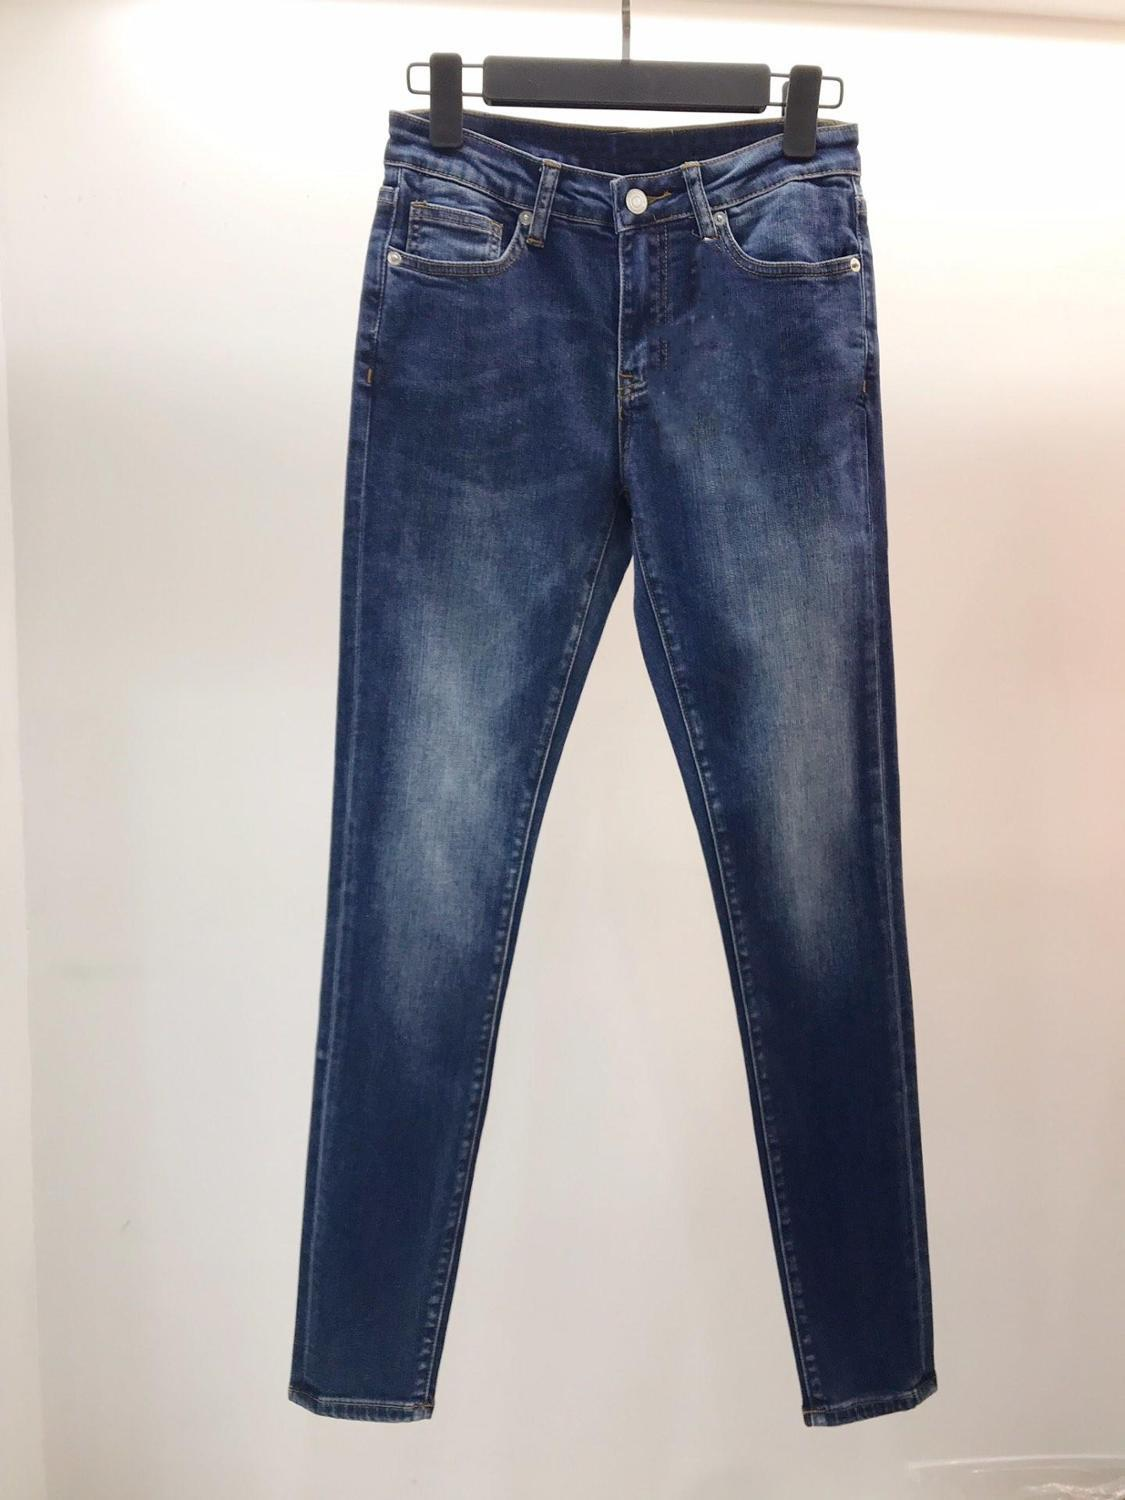 2019 ladies fashion slim waist leather jeans trousers 0712(China)